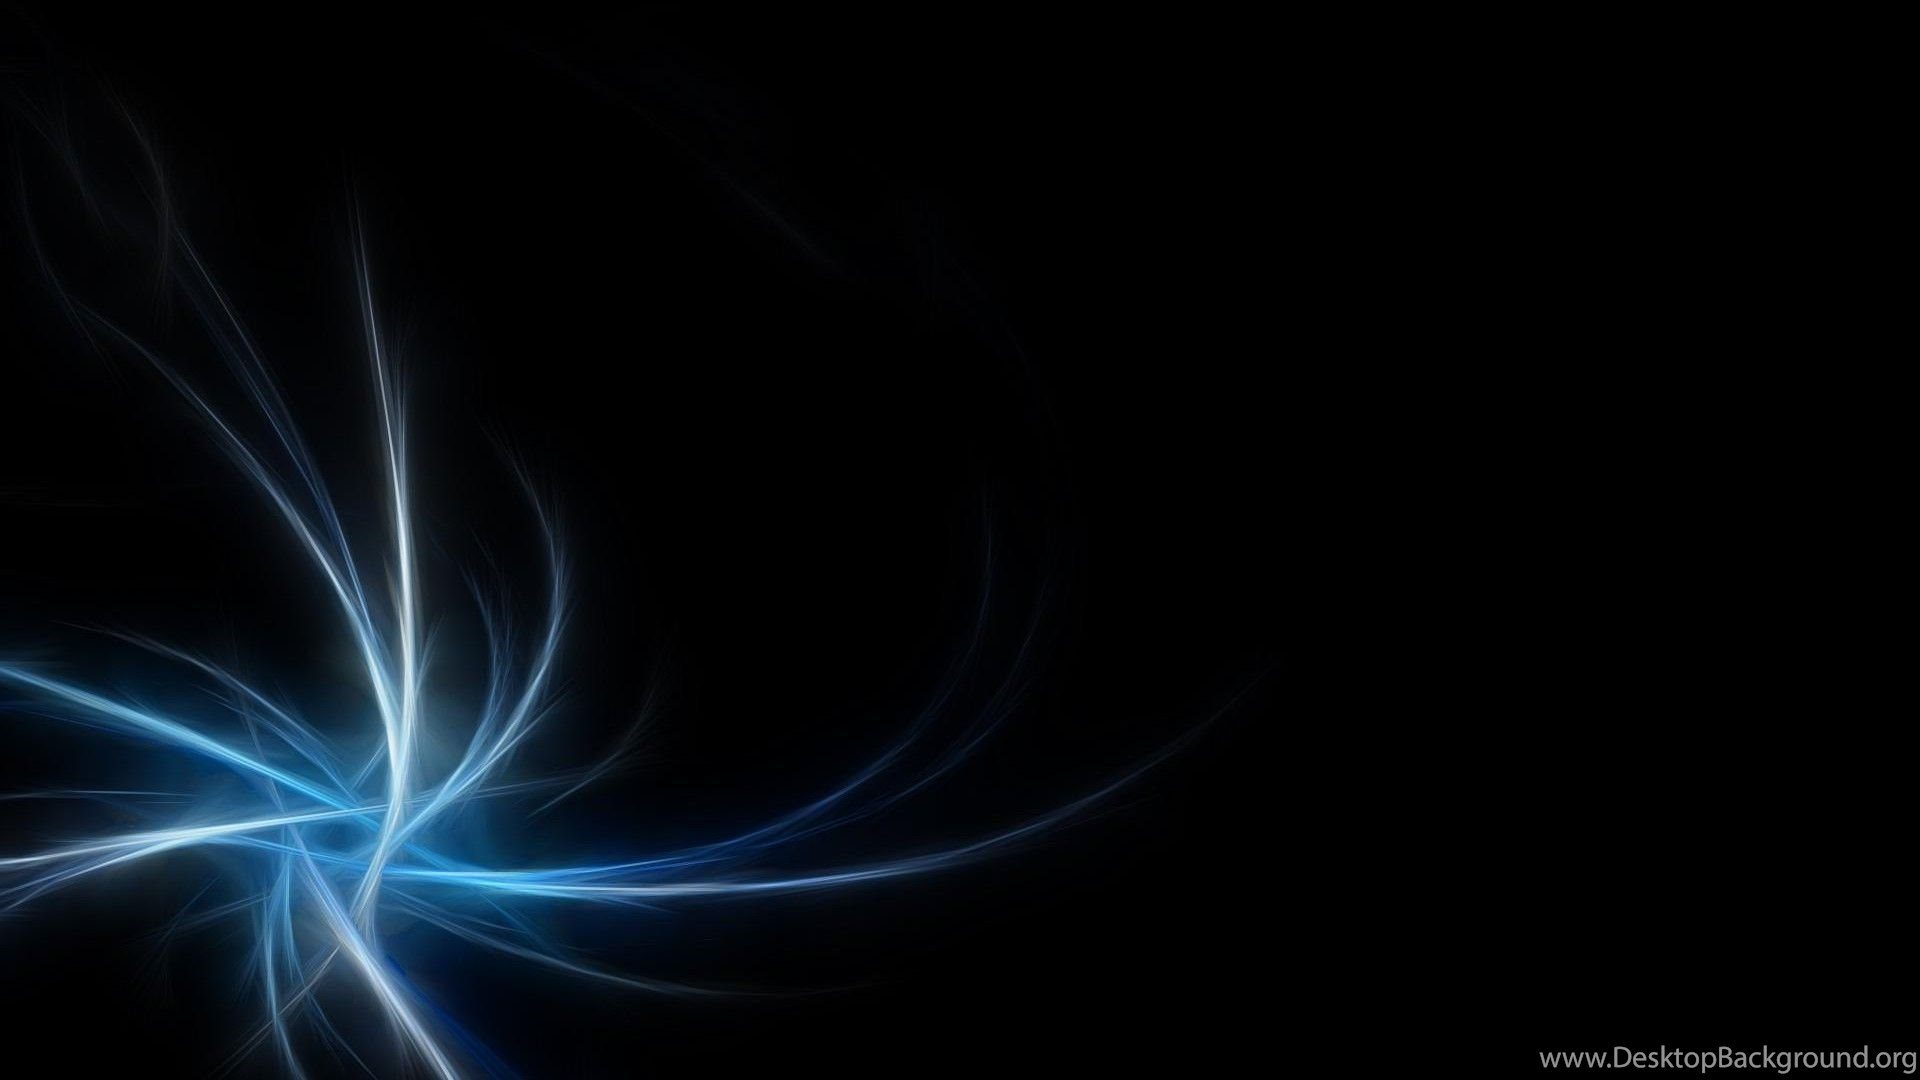 Abstract Blue Wallpapers 1080P 1914442 Desktop Background